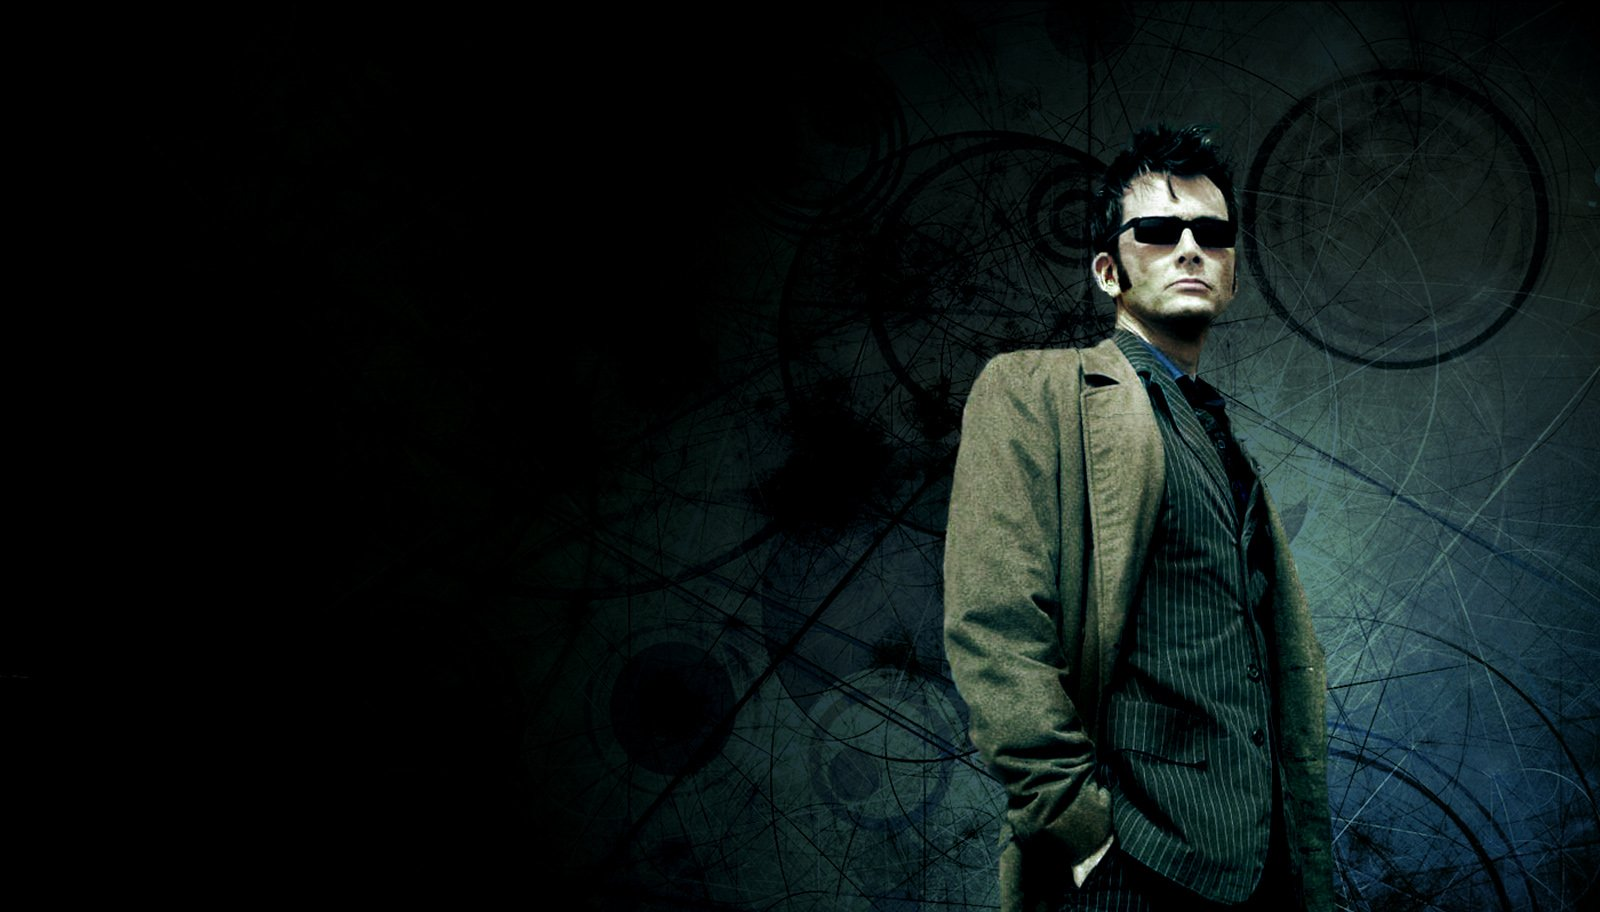 david tennant doctor who hd photo wallpapers download wallpaper 1600x912